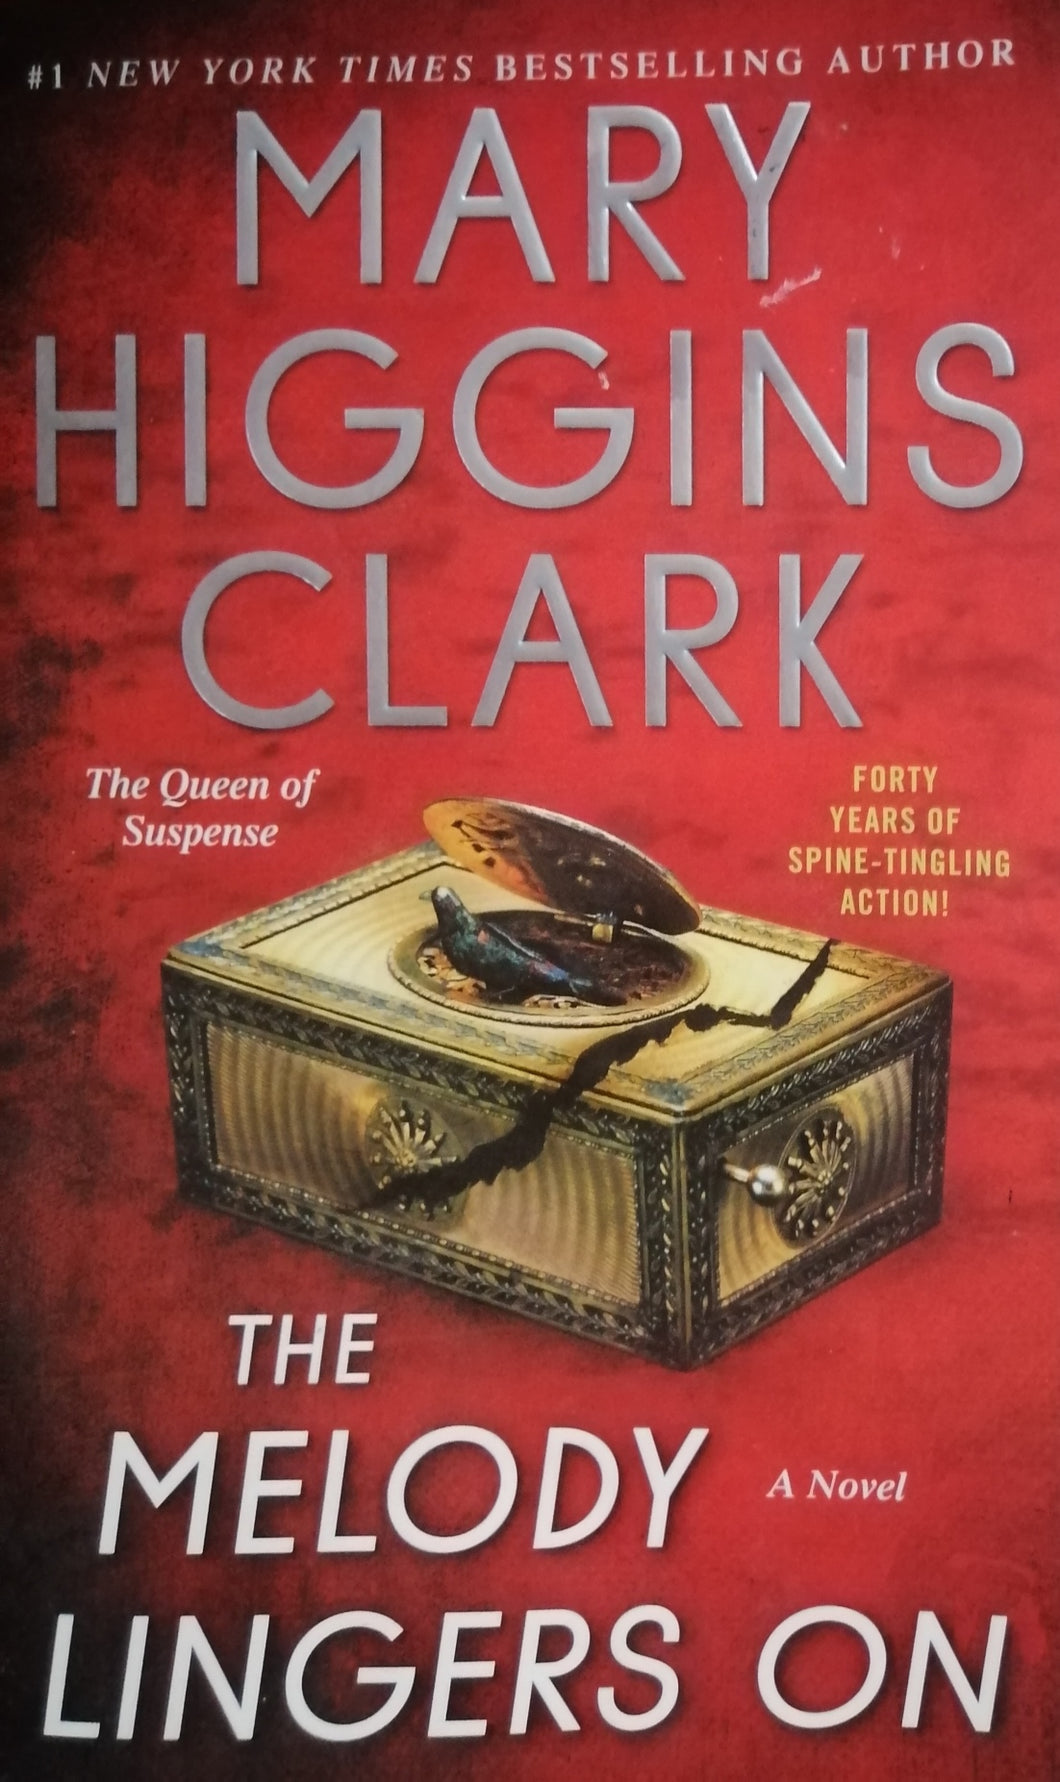 The melody lingsers on by Mary Higgins Clark